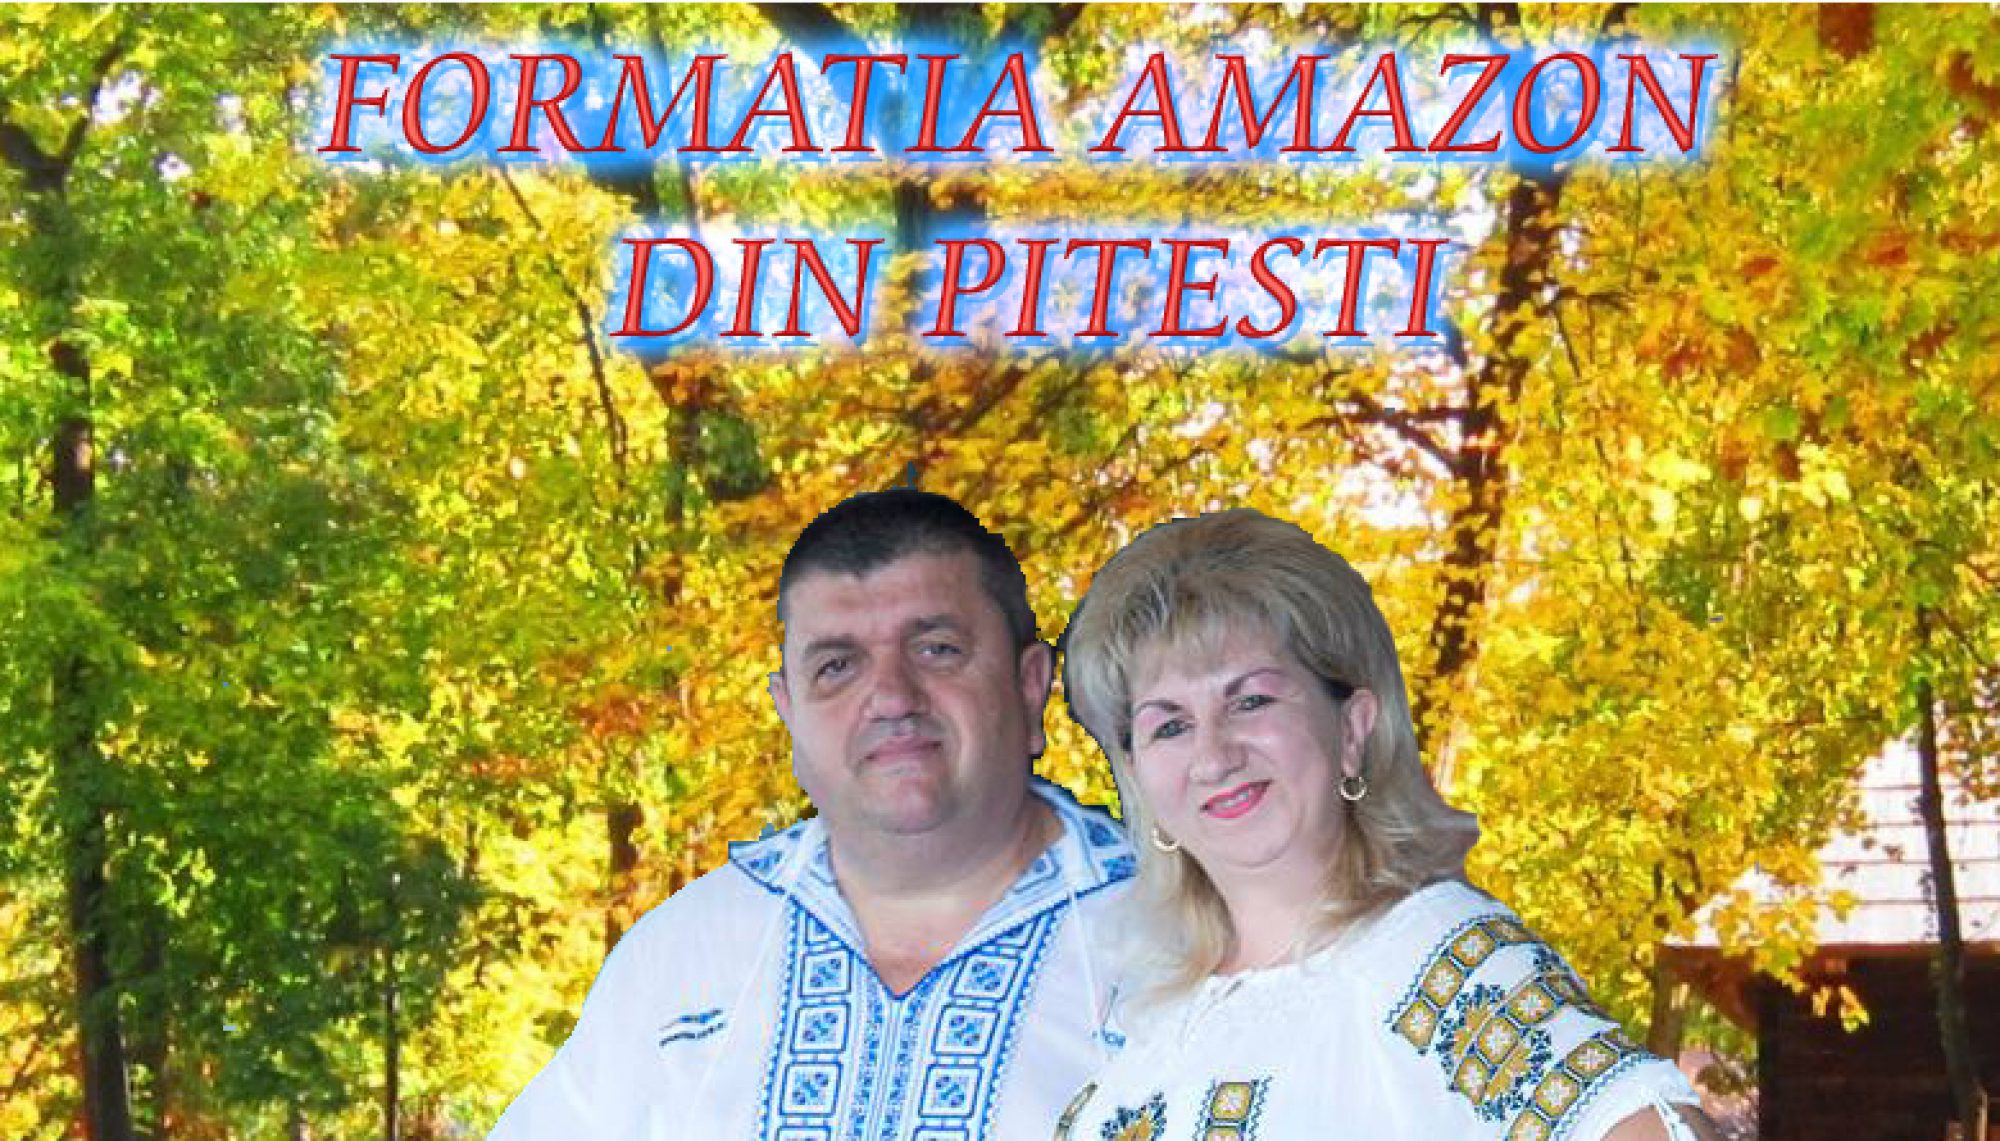 Formatia Amazon din Pitesti